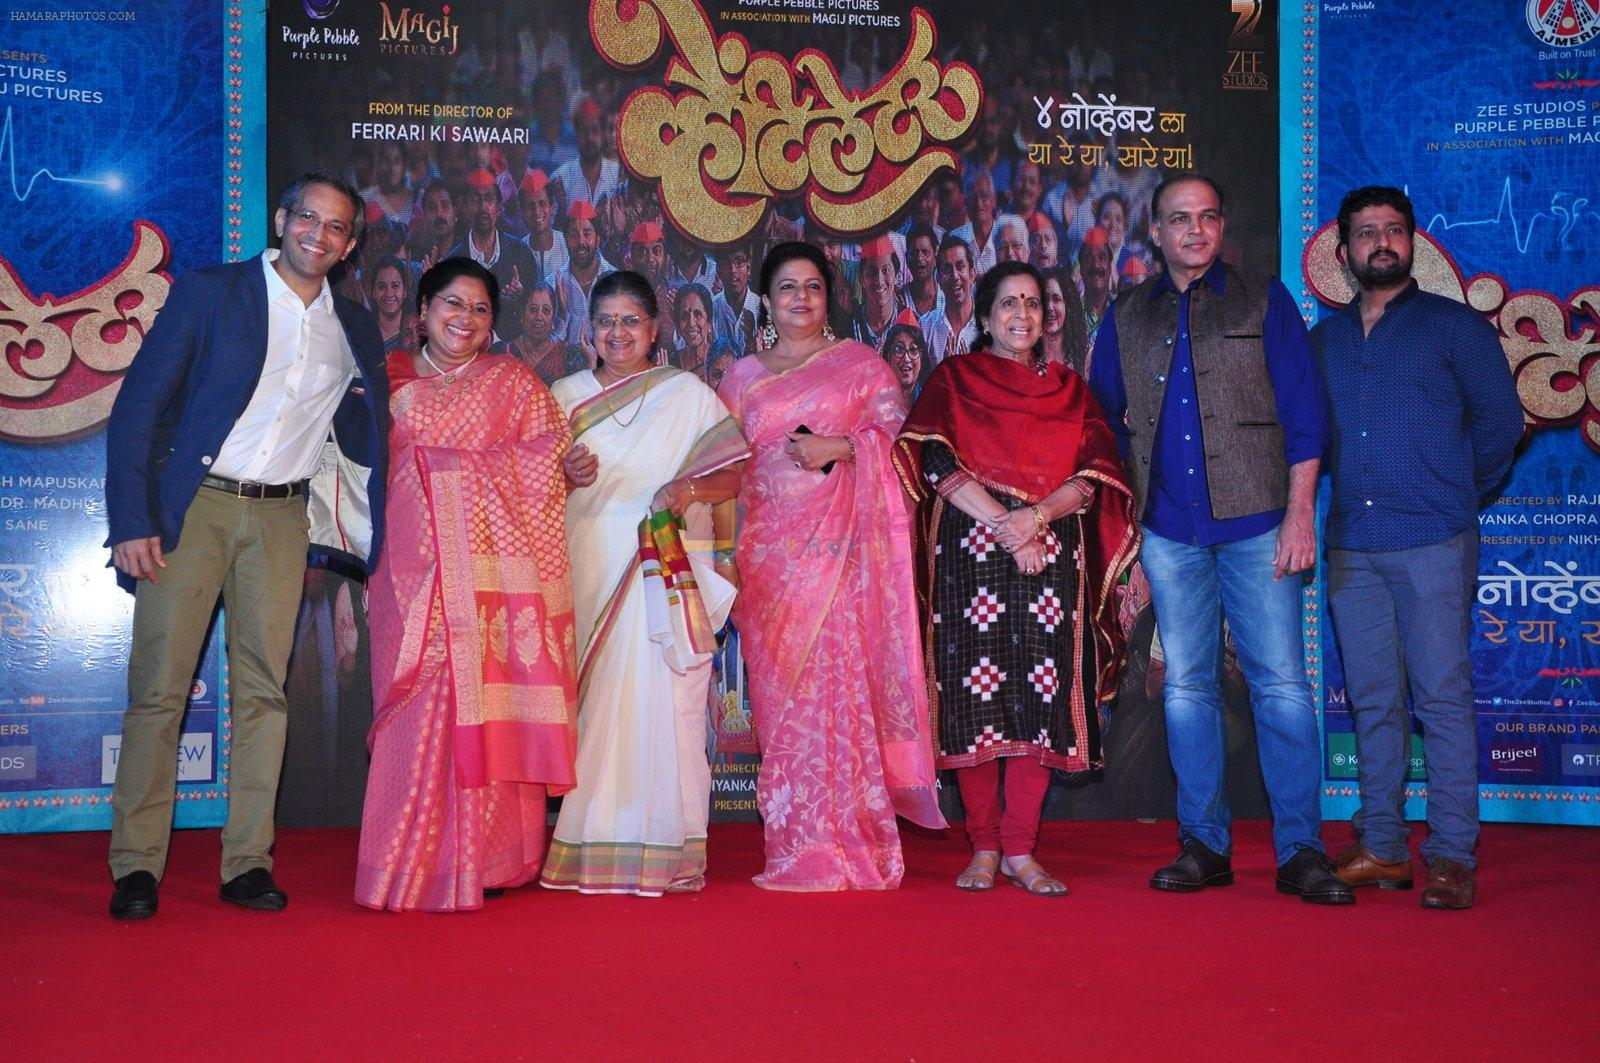 Usha Nadkarni,Ashutosh Gowariker at Priyanka's marathi film on 15th Oct 2016